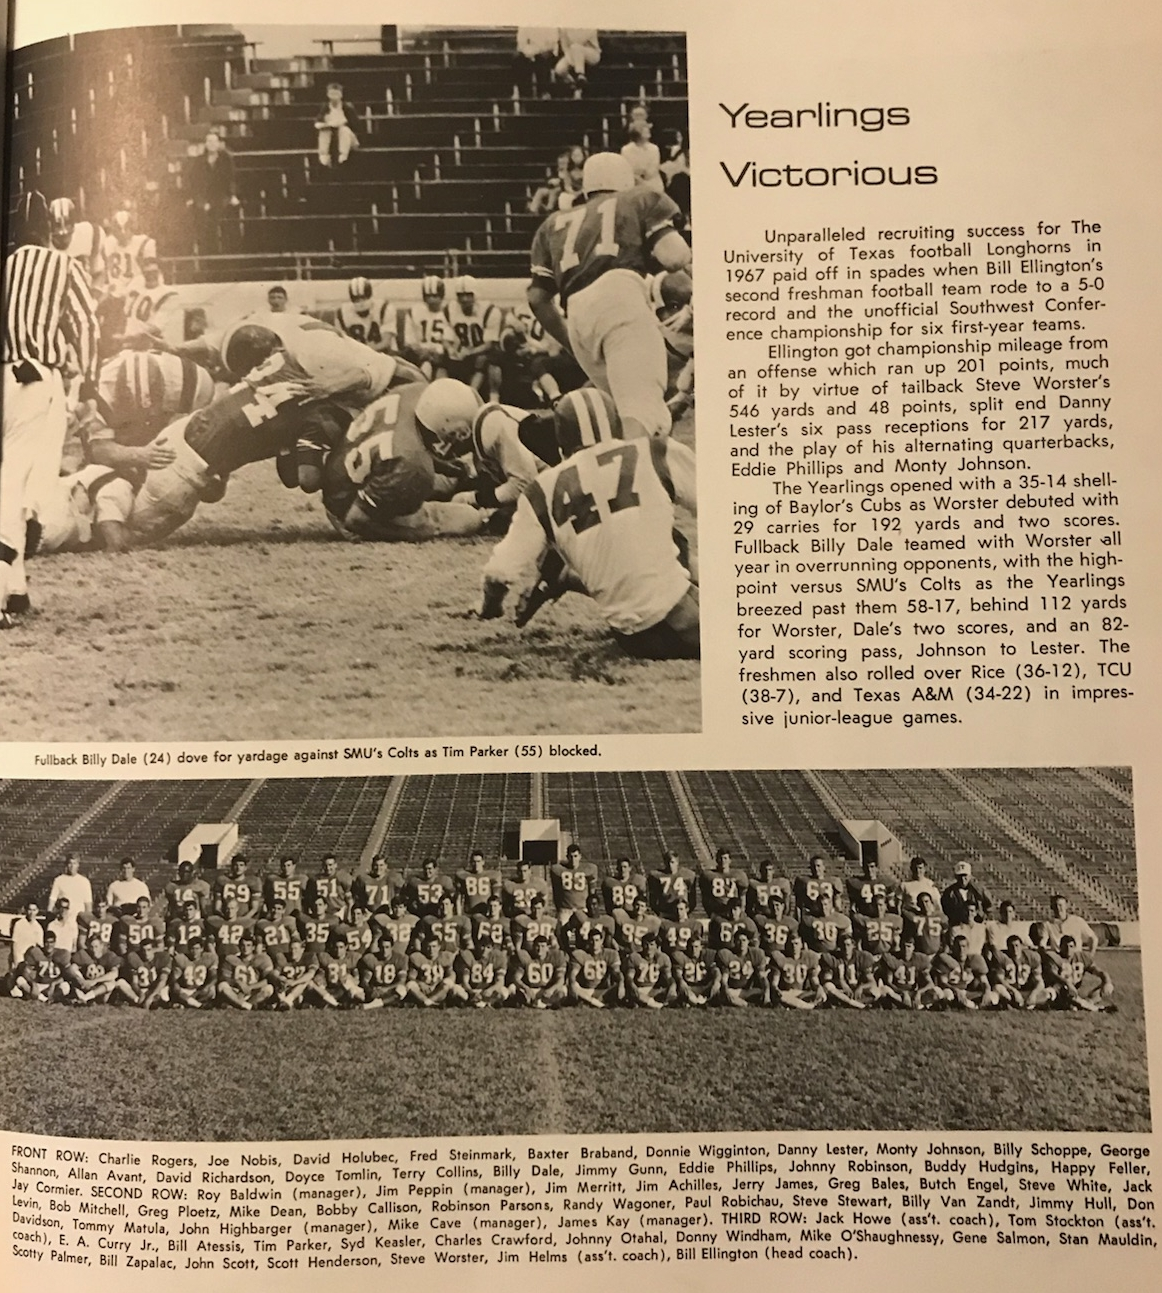 The 1967 Freshman class is statistically the best recruiting classes in Longhorn football history.